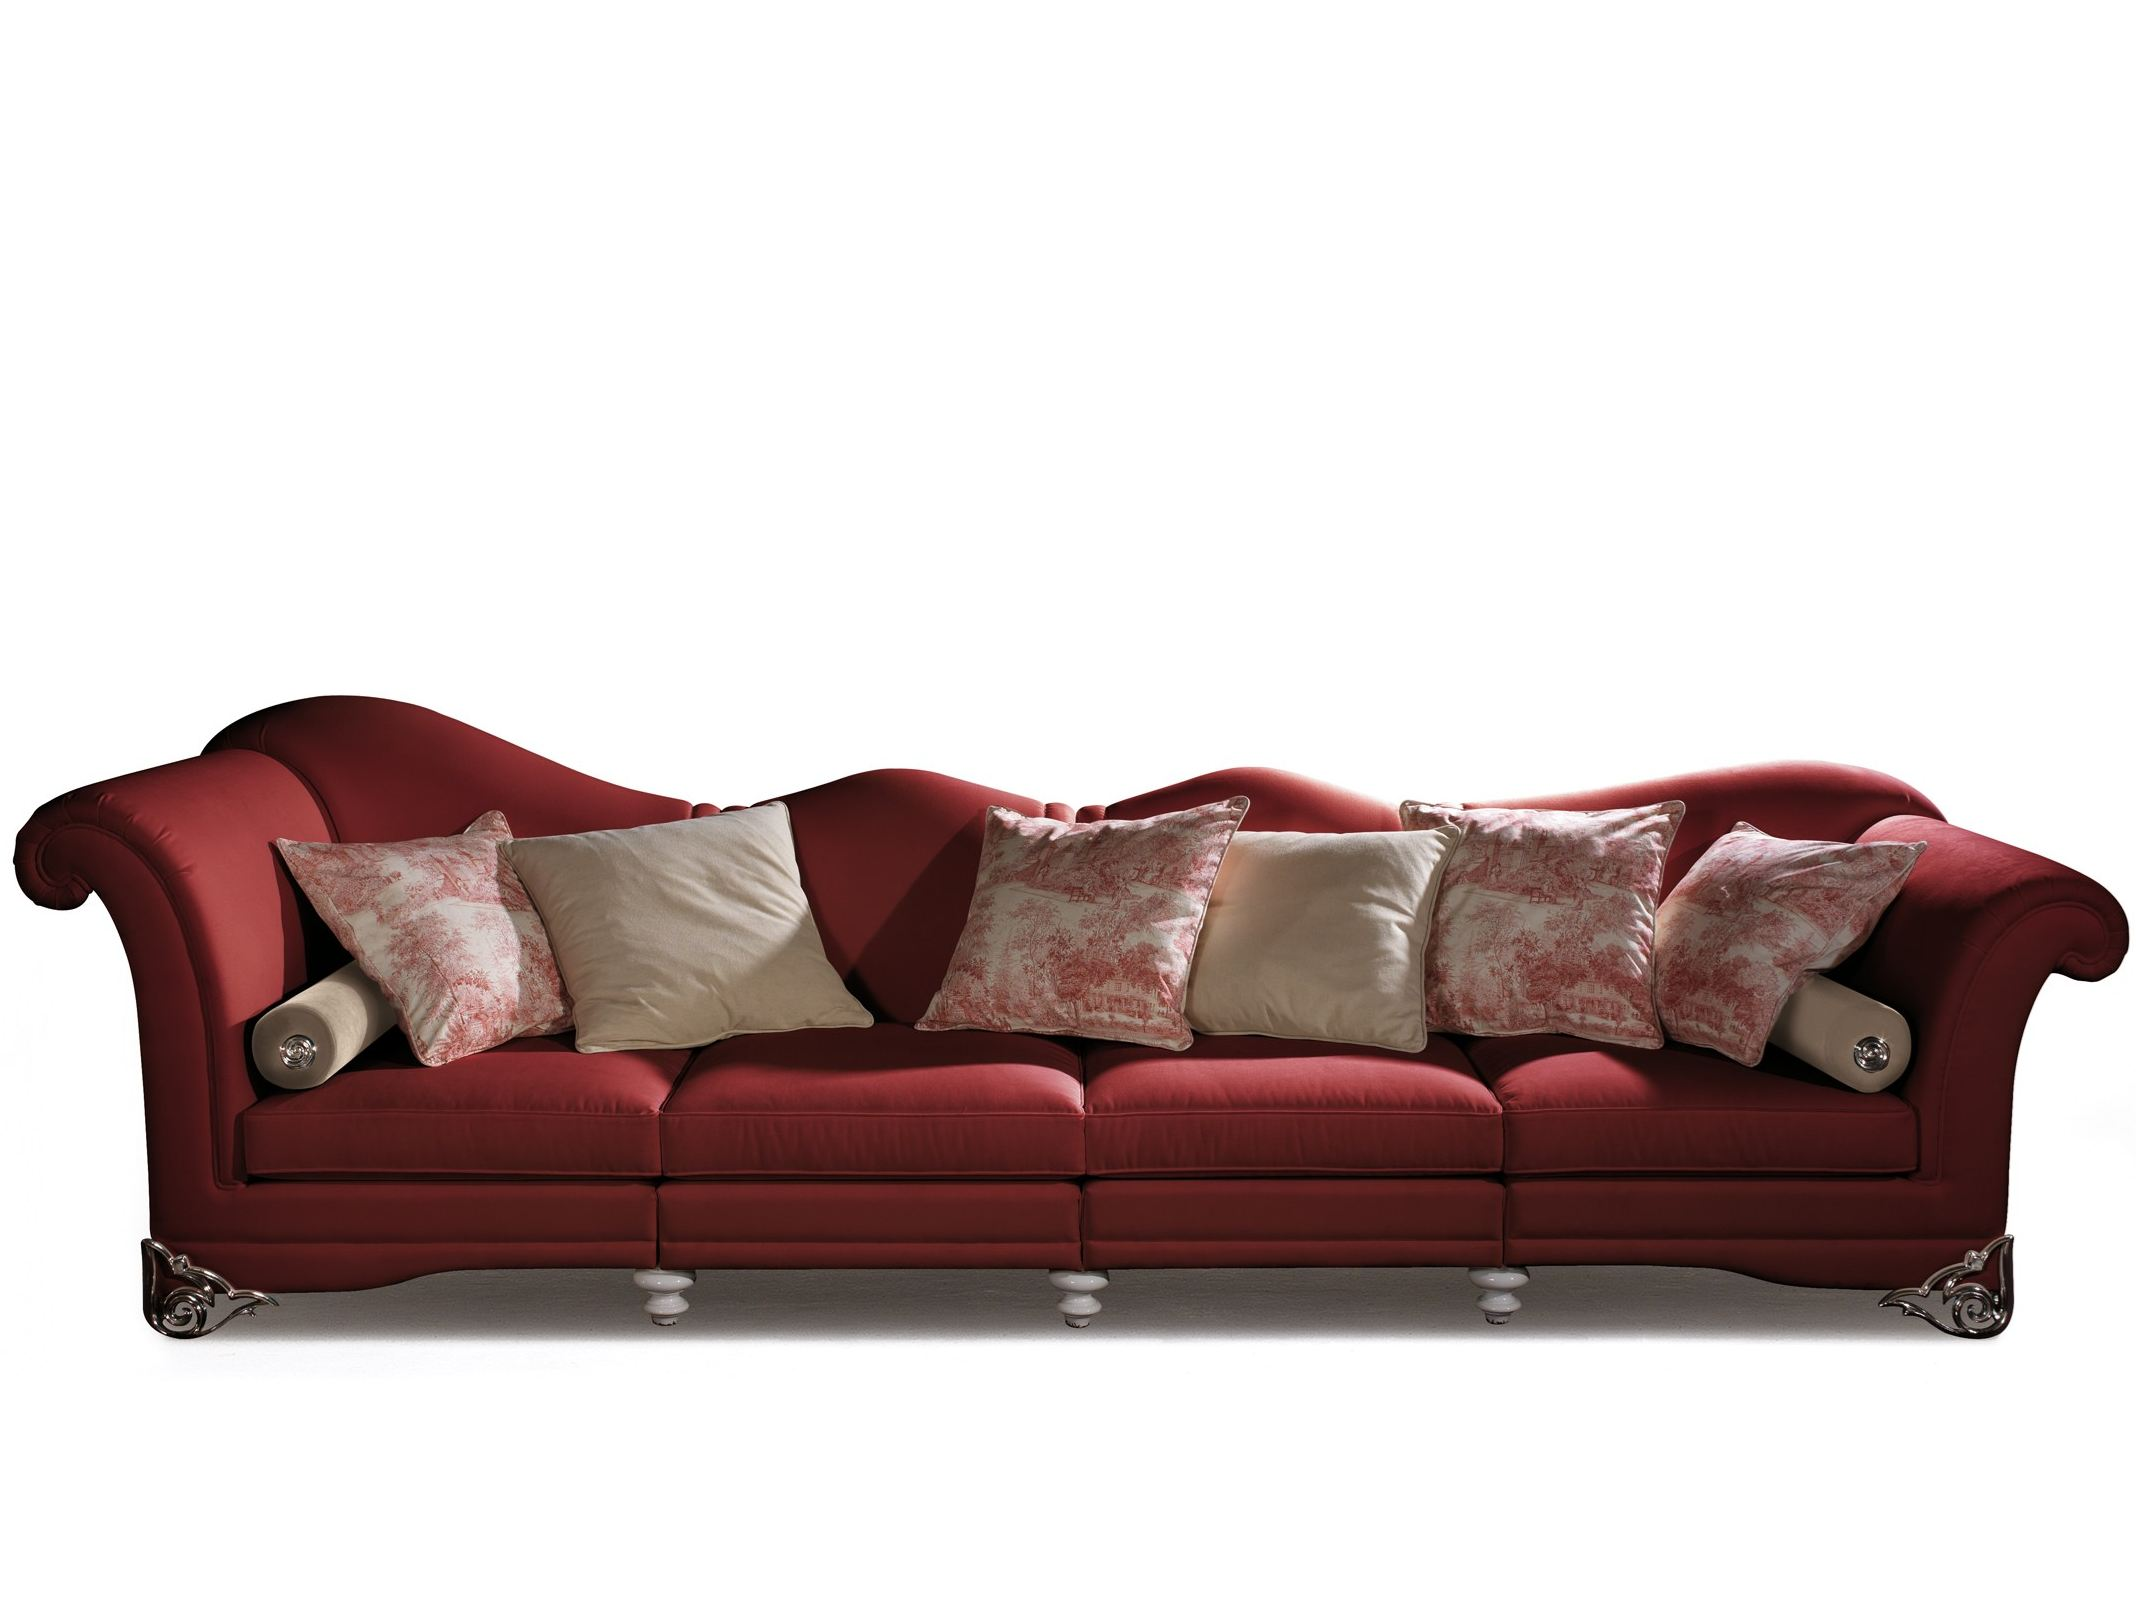 Classic Style 4 Seater Sofas